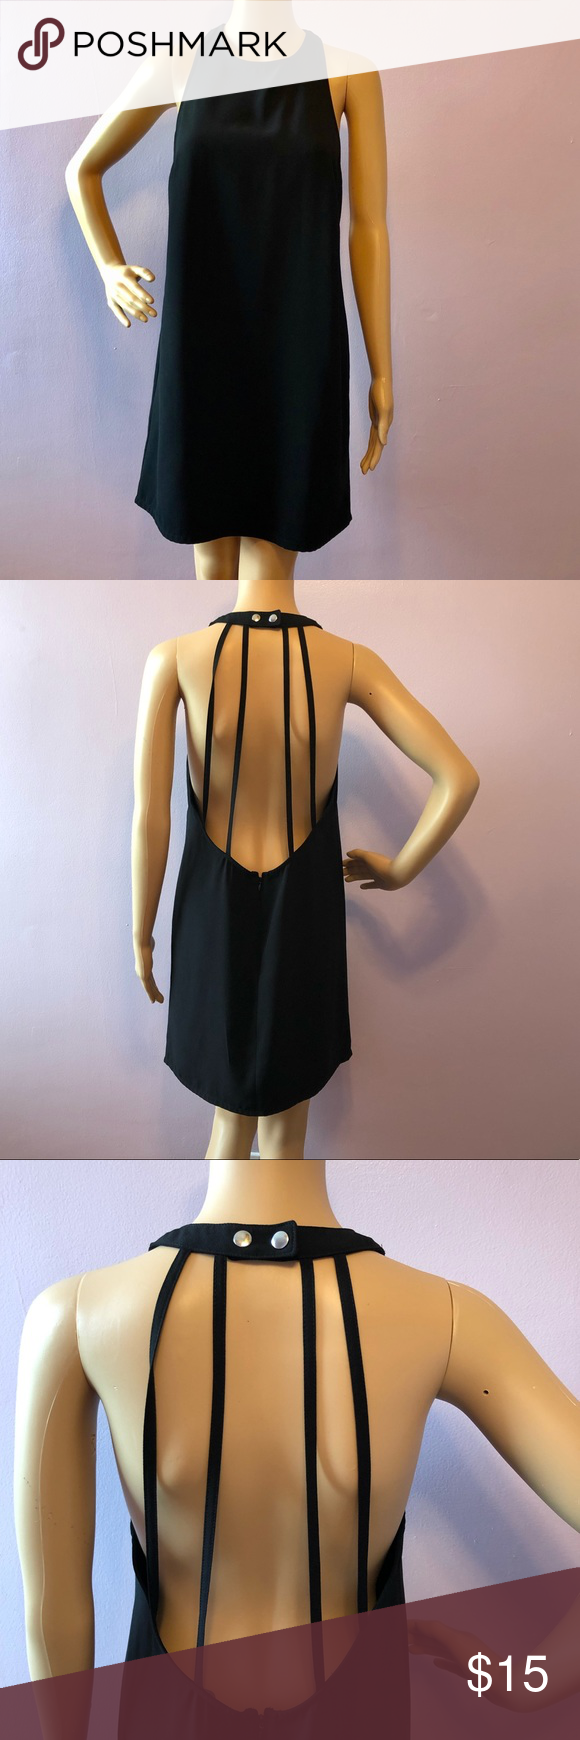 Forever 21 Black Flare Mid Sleeveless  Dress Large All measurements are flat lay; Waist 16 Shoulder to bottom 33 100% Polyester Gently Used Item#D036 *Accepting reasonable offers Forever 21 Dresses Midi #blacksleevelessdress